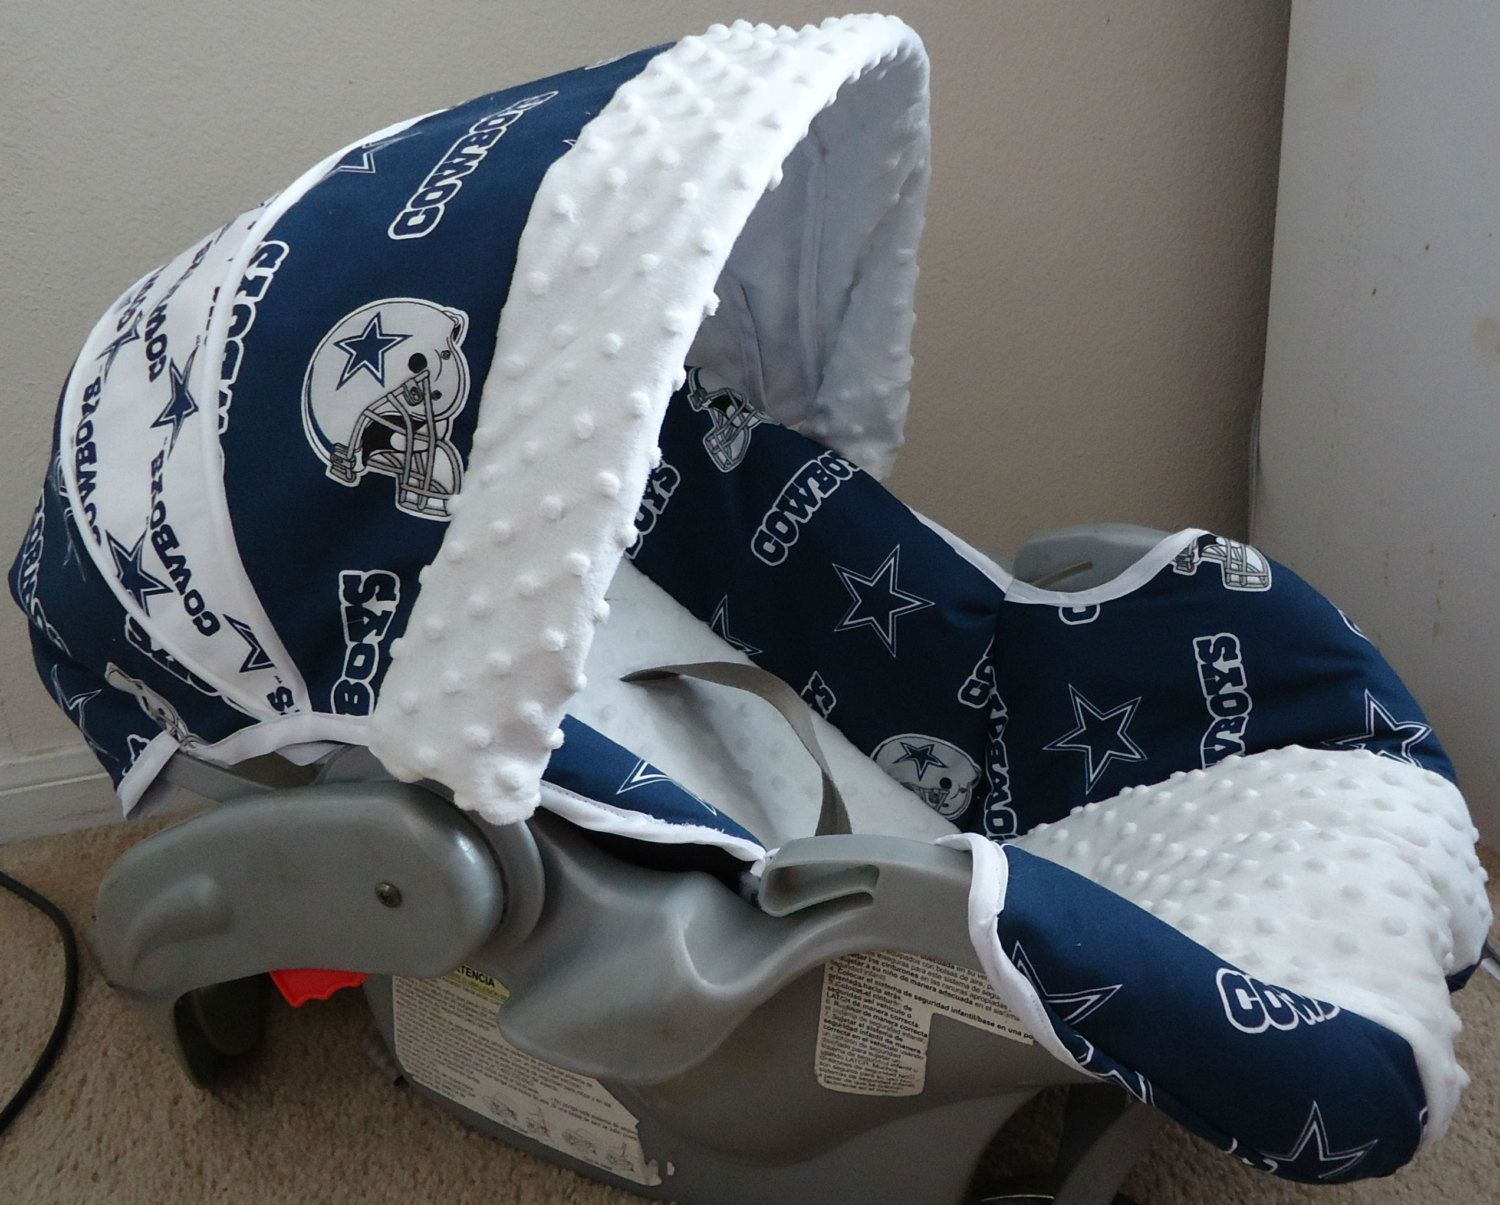 Outstanding Baby Car Seat Cover Made With Dallas Cowboys Fabric By Alphanode Cool Chair Designs And Ideas Alphanodeonline